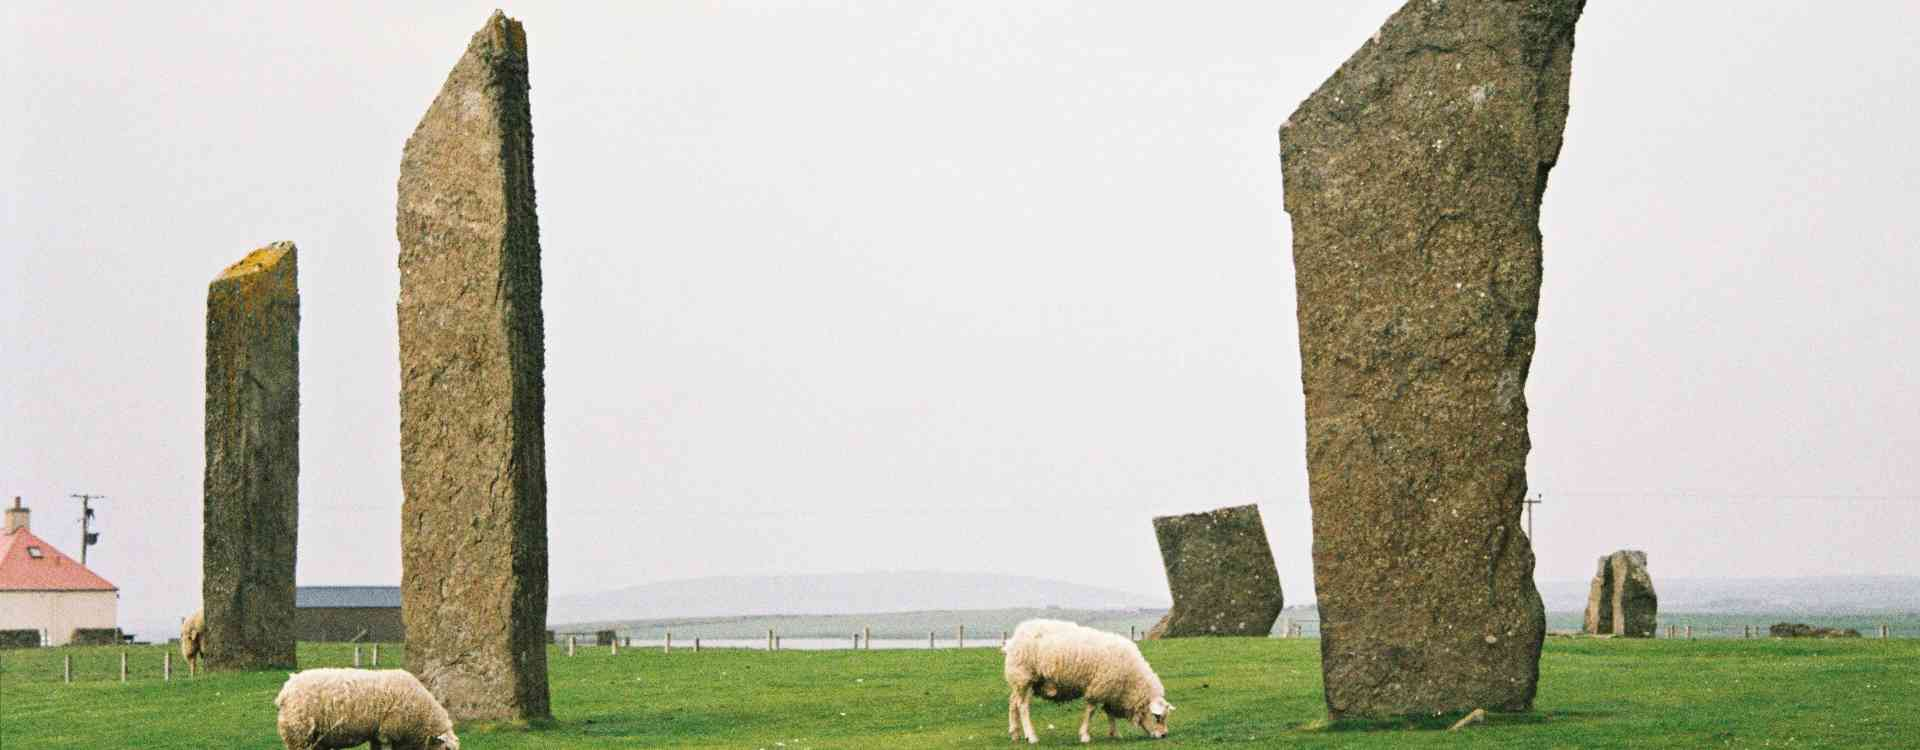 Orkney Islands' Standing Stones of Stenness, by Jasmin Gorsuch